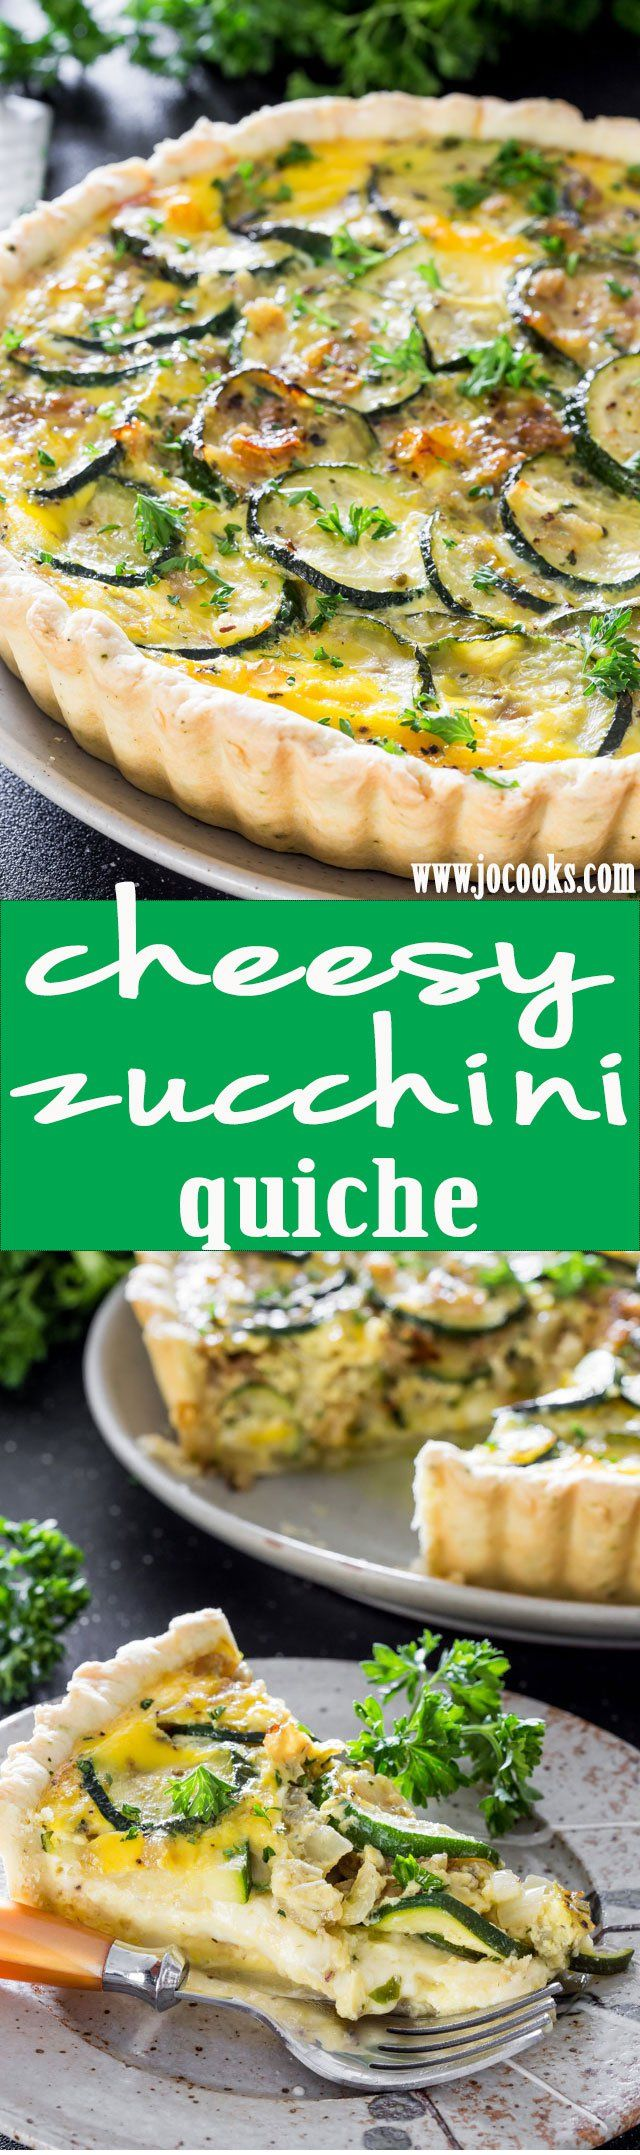 This Cheesy Zucchini Quiche is simple to make and ideal for the quiche lover in your family. It's super cheesy and perfect for meatless Monday!